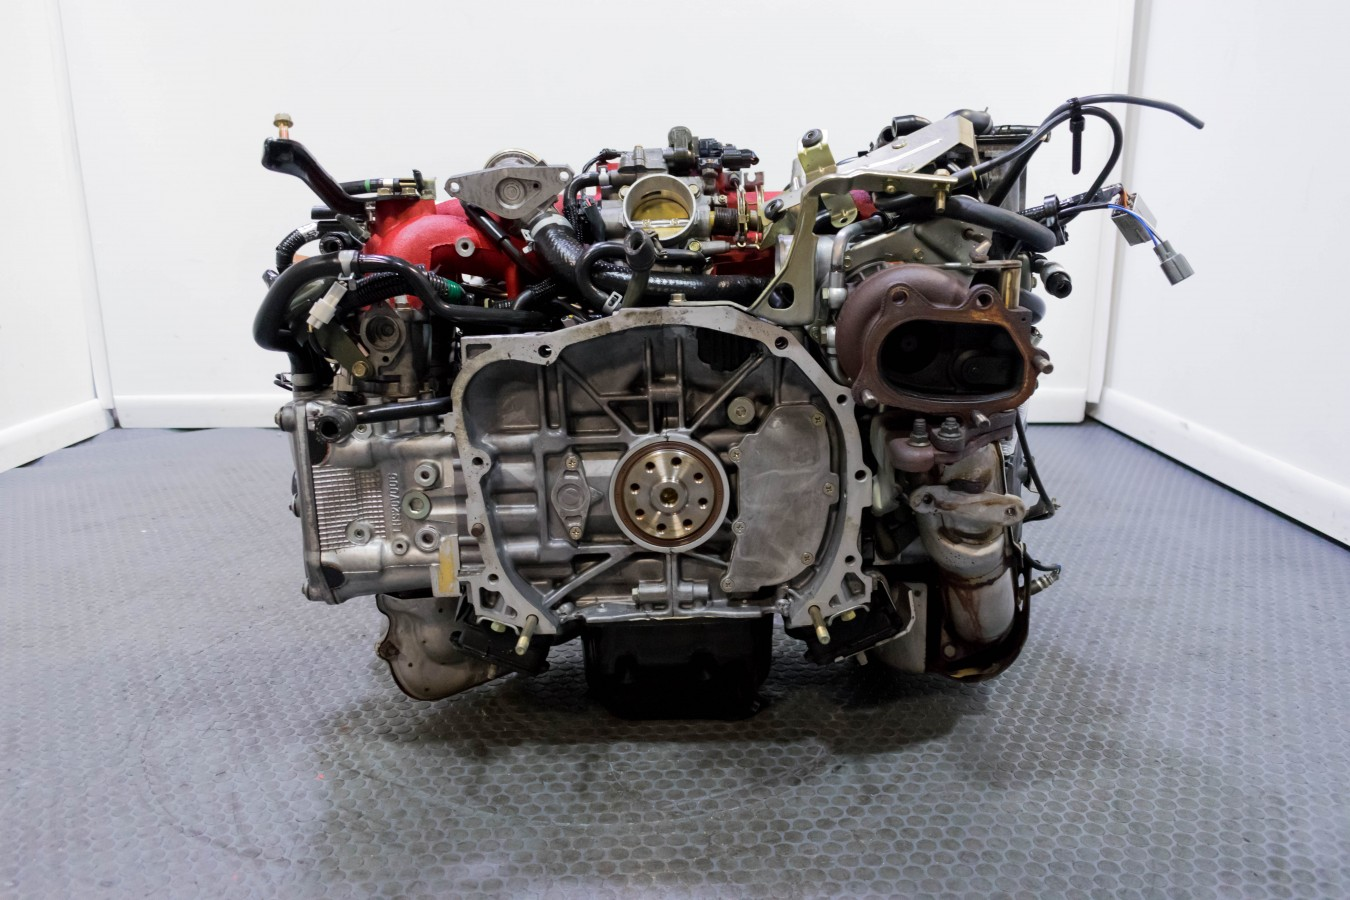 JDM EJ207 Ver  7 STI Engine Swap for 02-05 Subaru Impreza WRX with TGV  Delete Option that includes TMIC, OEM Downpipe and ECU Package for sale